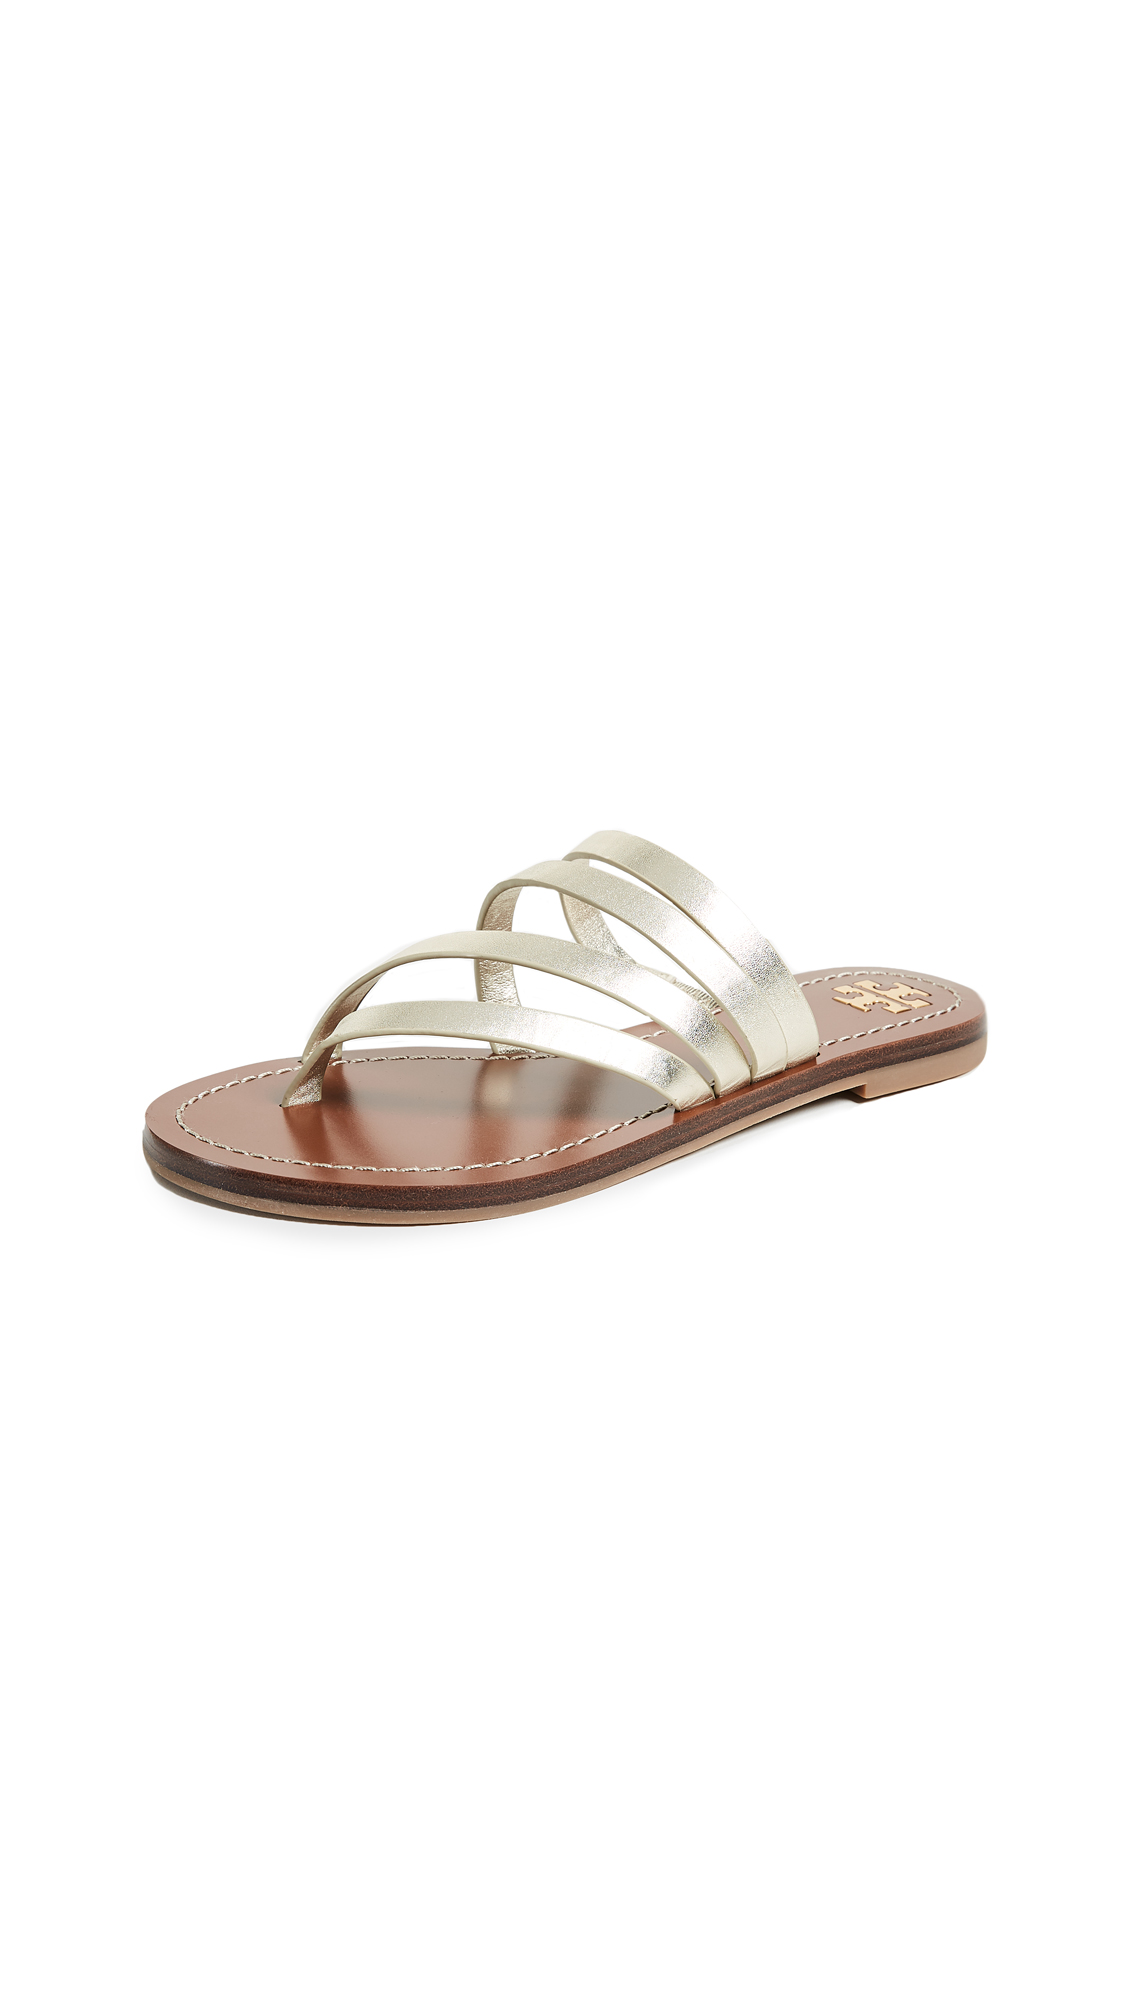 Photo of Tory Burch Patos Flat Sandals online shoes sales